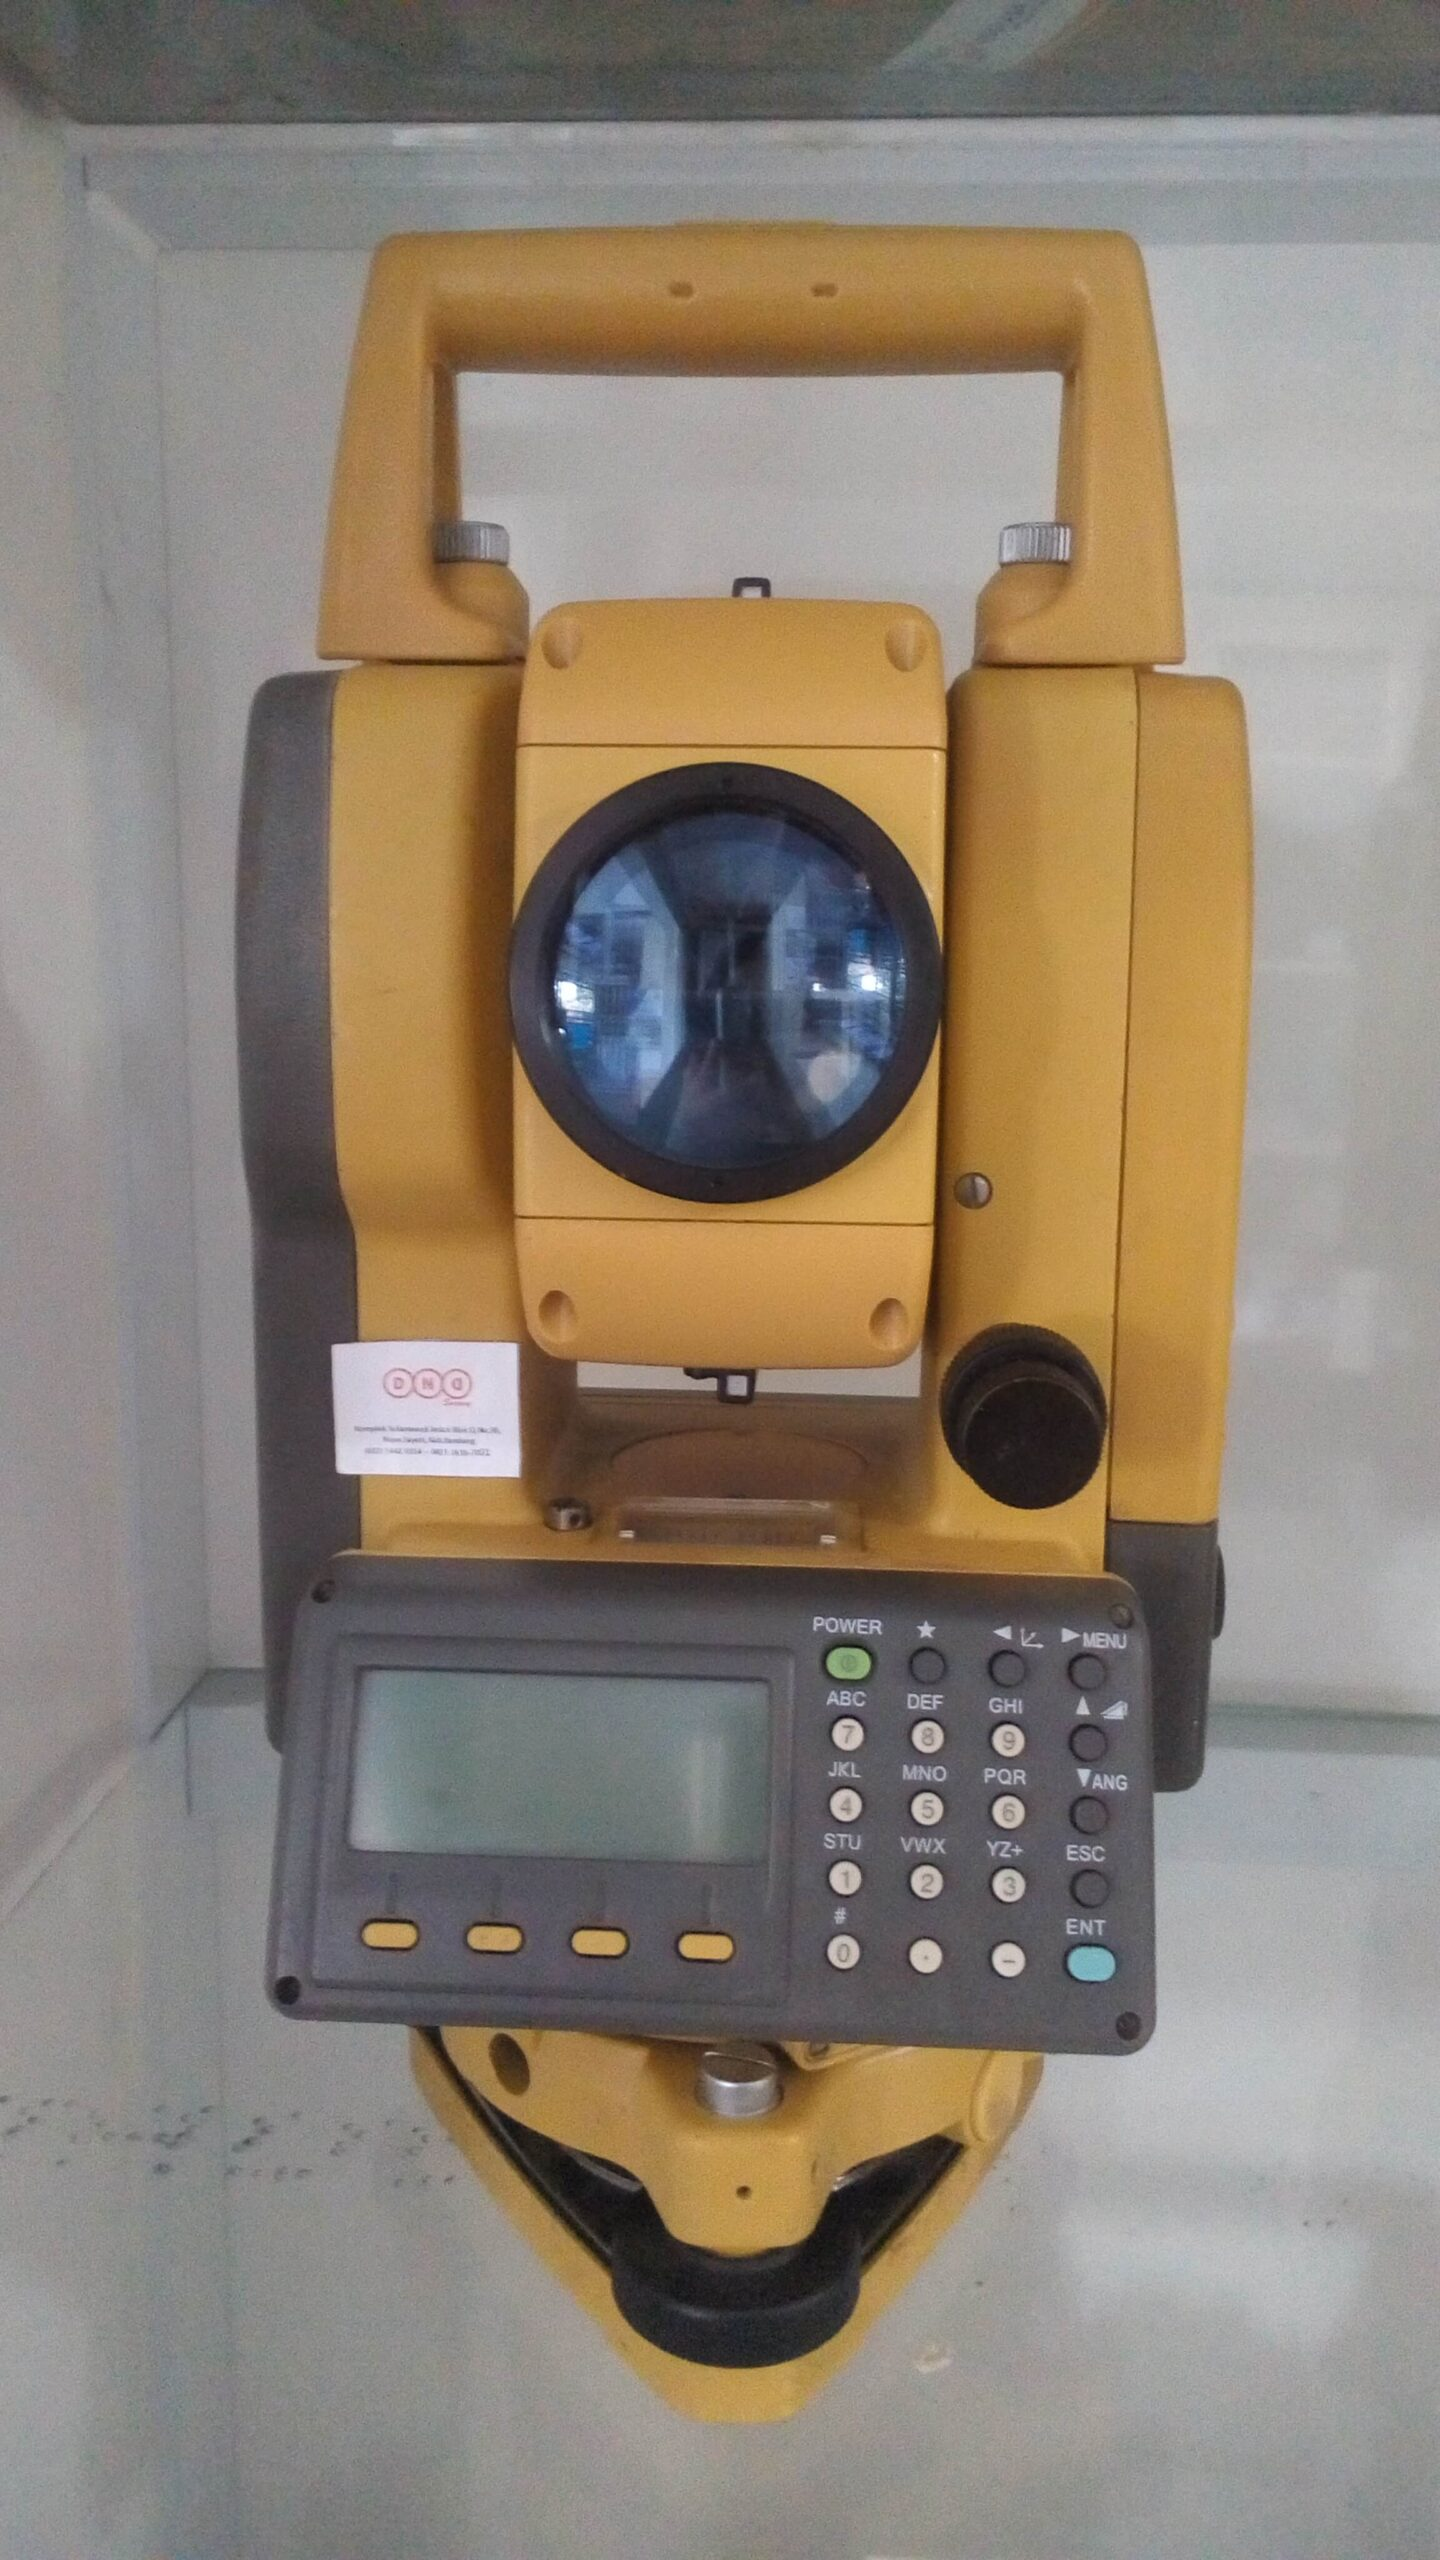 Total Station Topcon GTS 105N